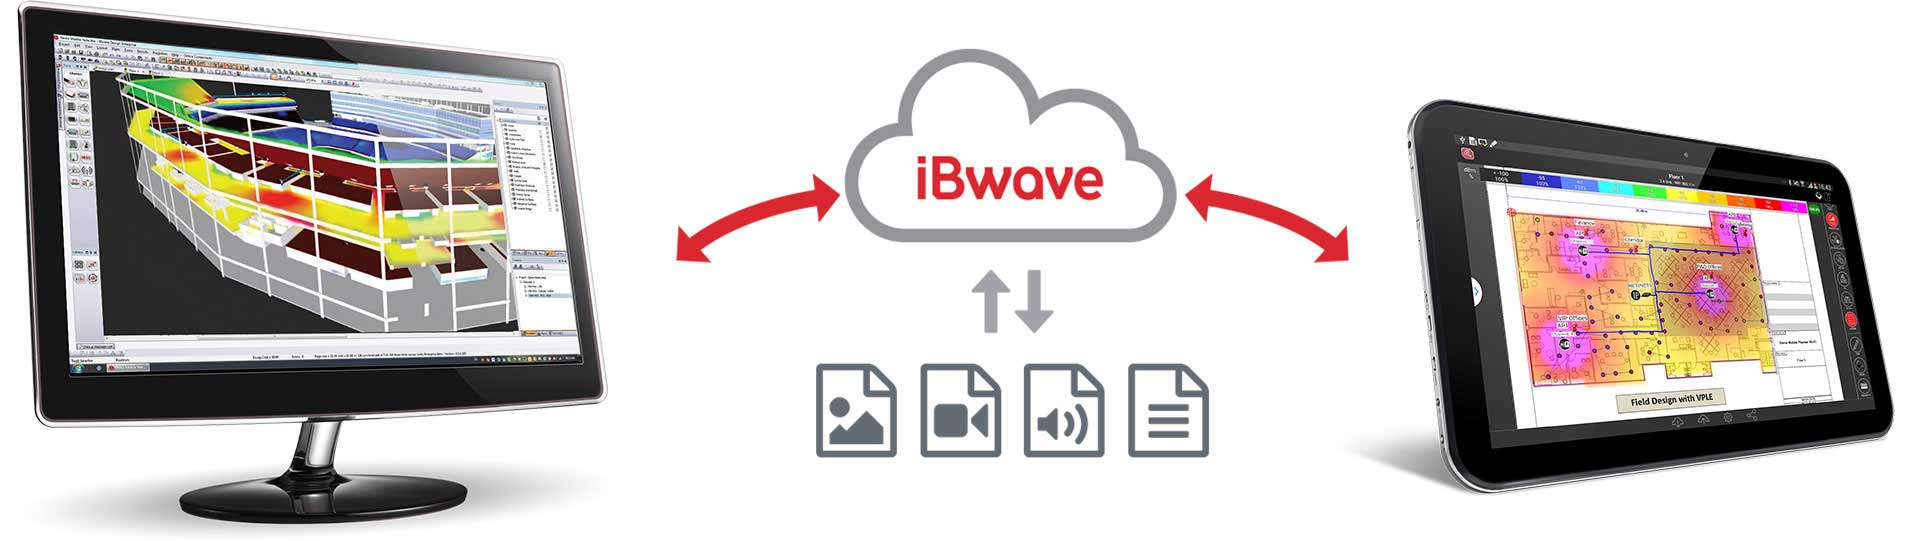 iBwave Wi-Fi and iBwave Wi-Fi Mobile via the Cloud